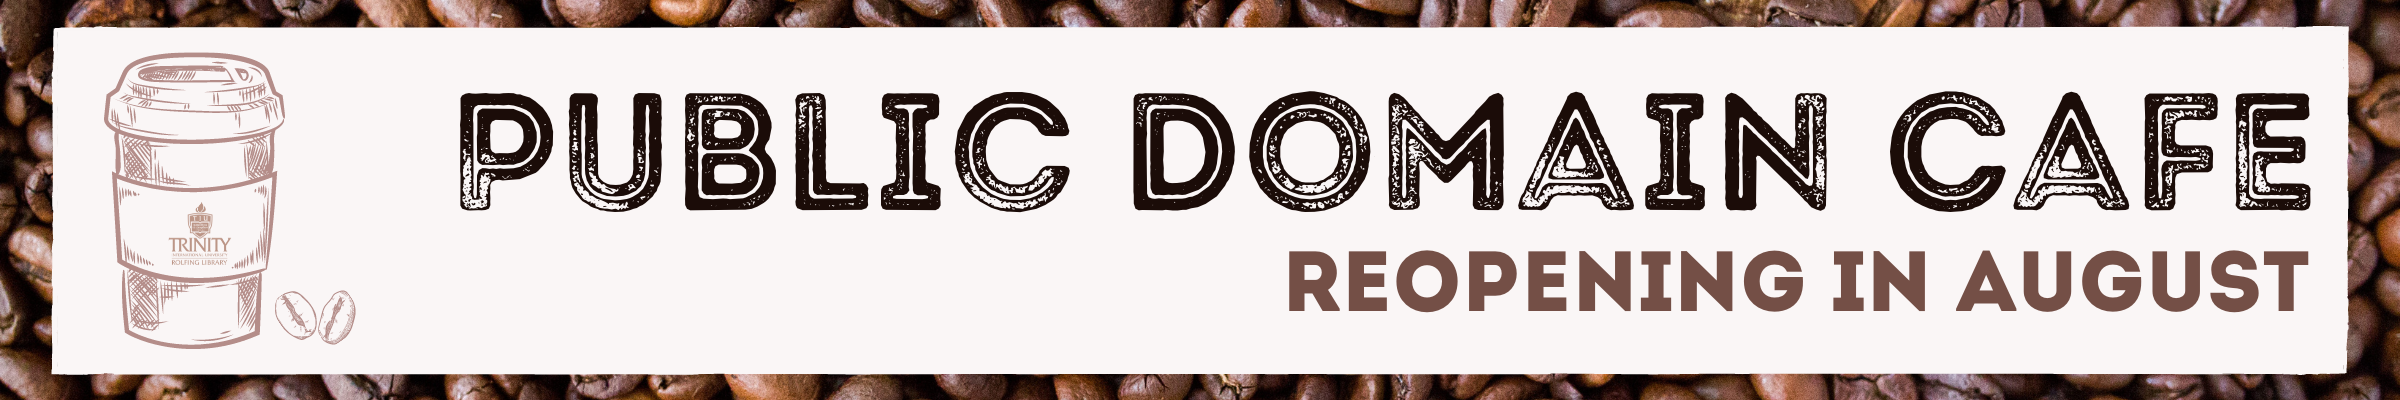 Public Domain Cafe is reopening in August!